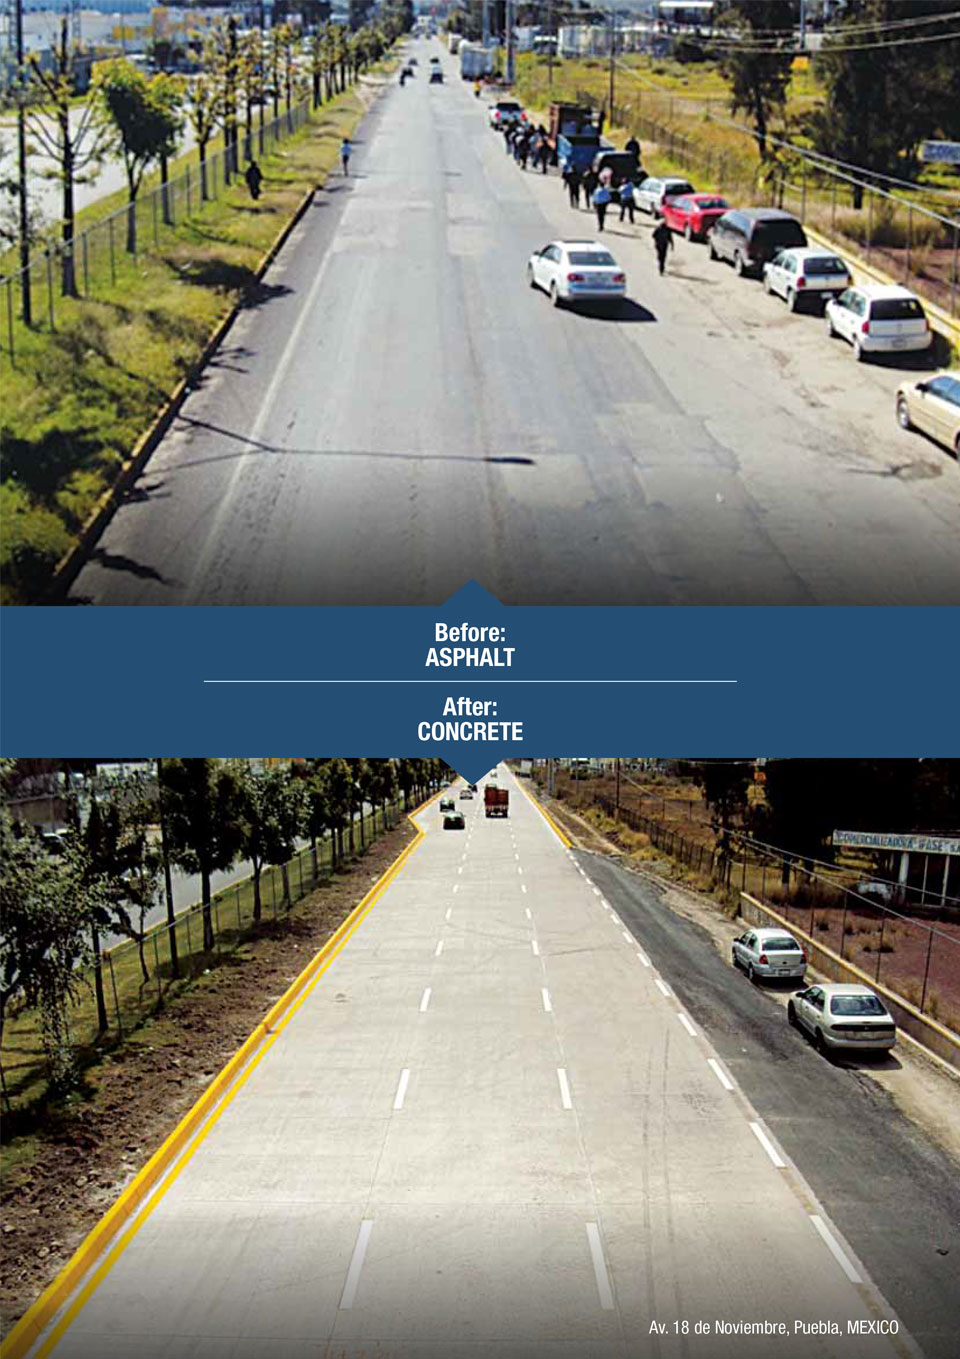 the image shows a before and after of a road with asphalt and then with concrete